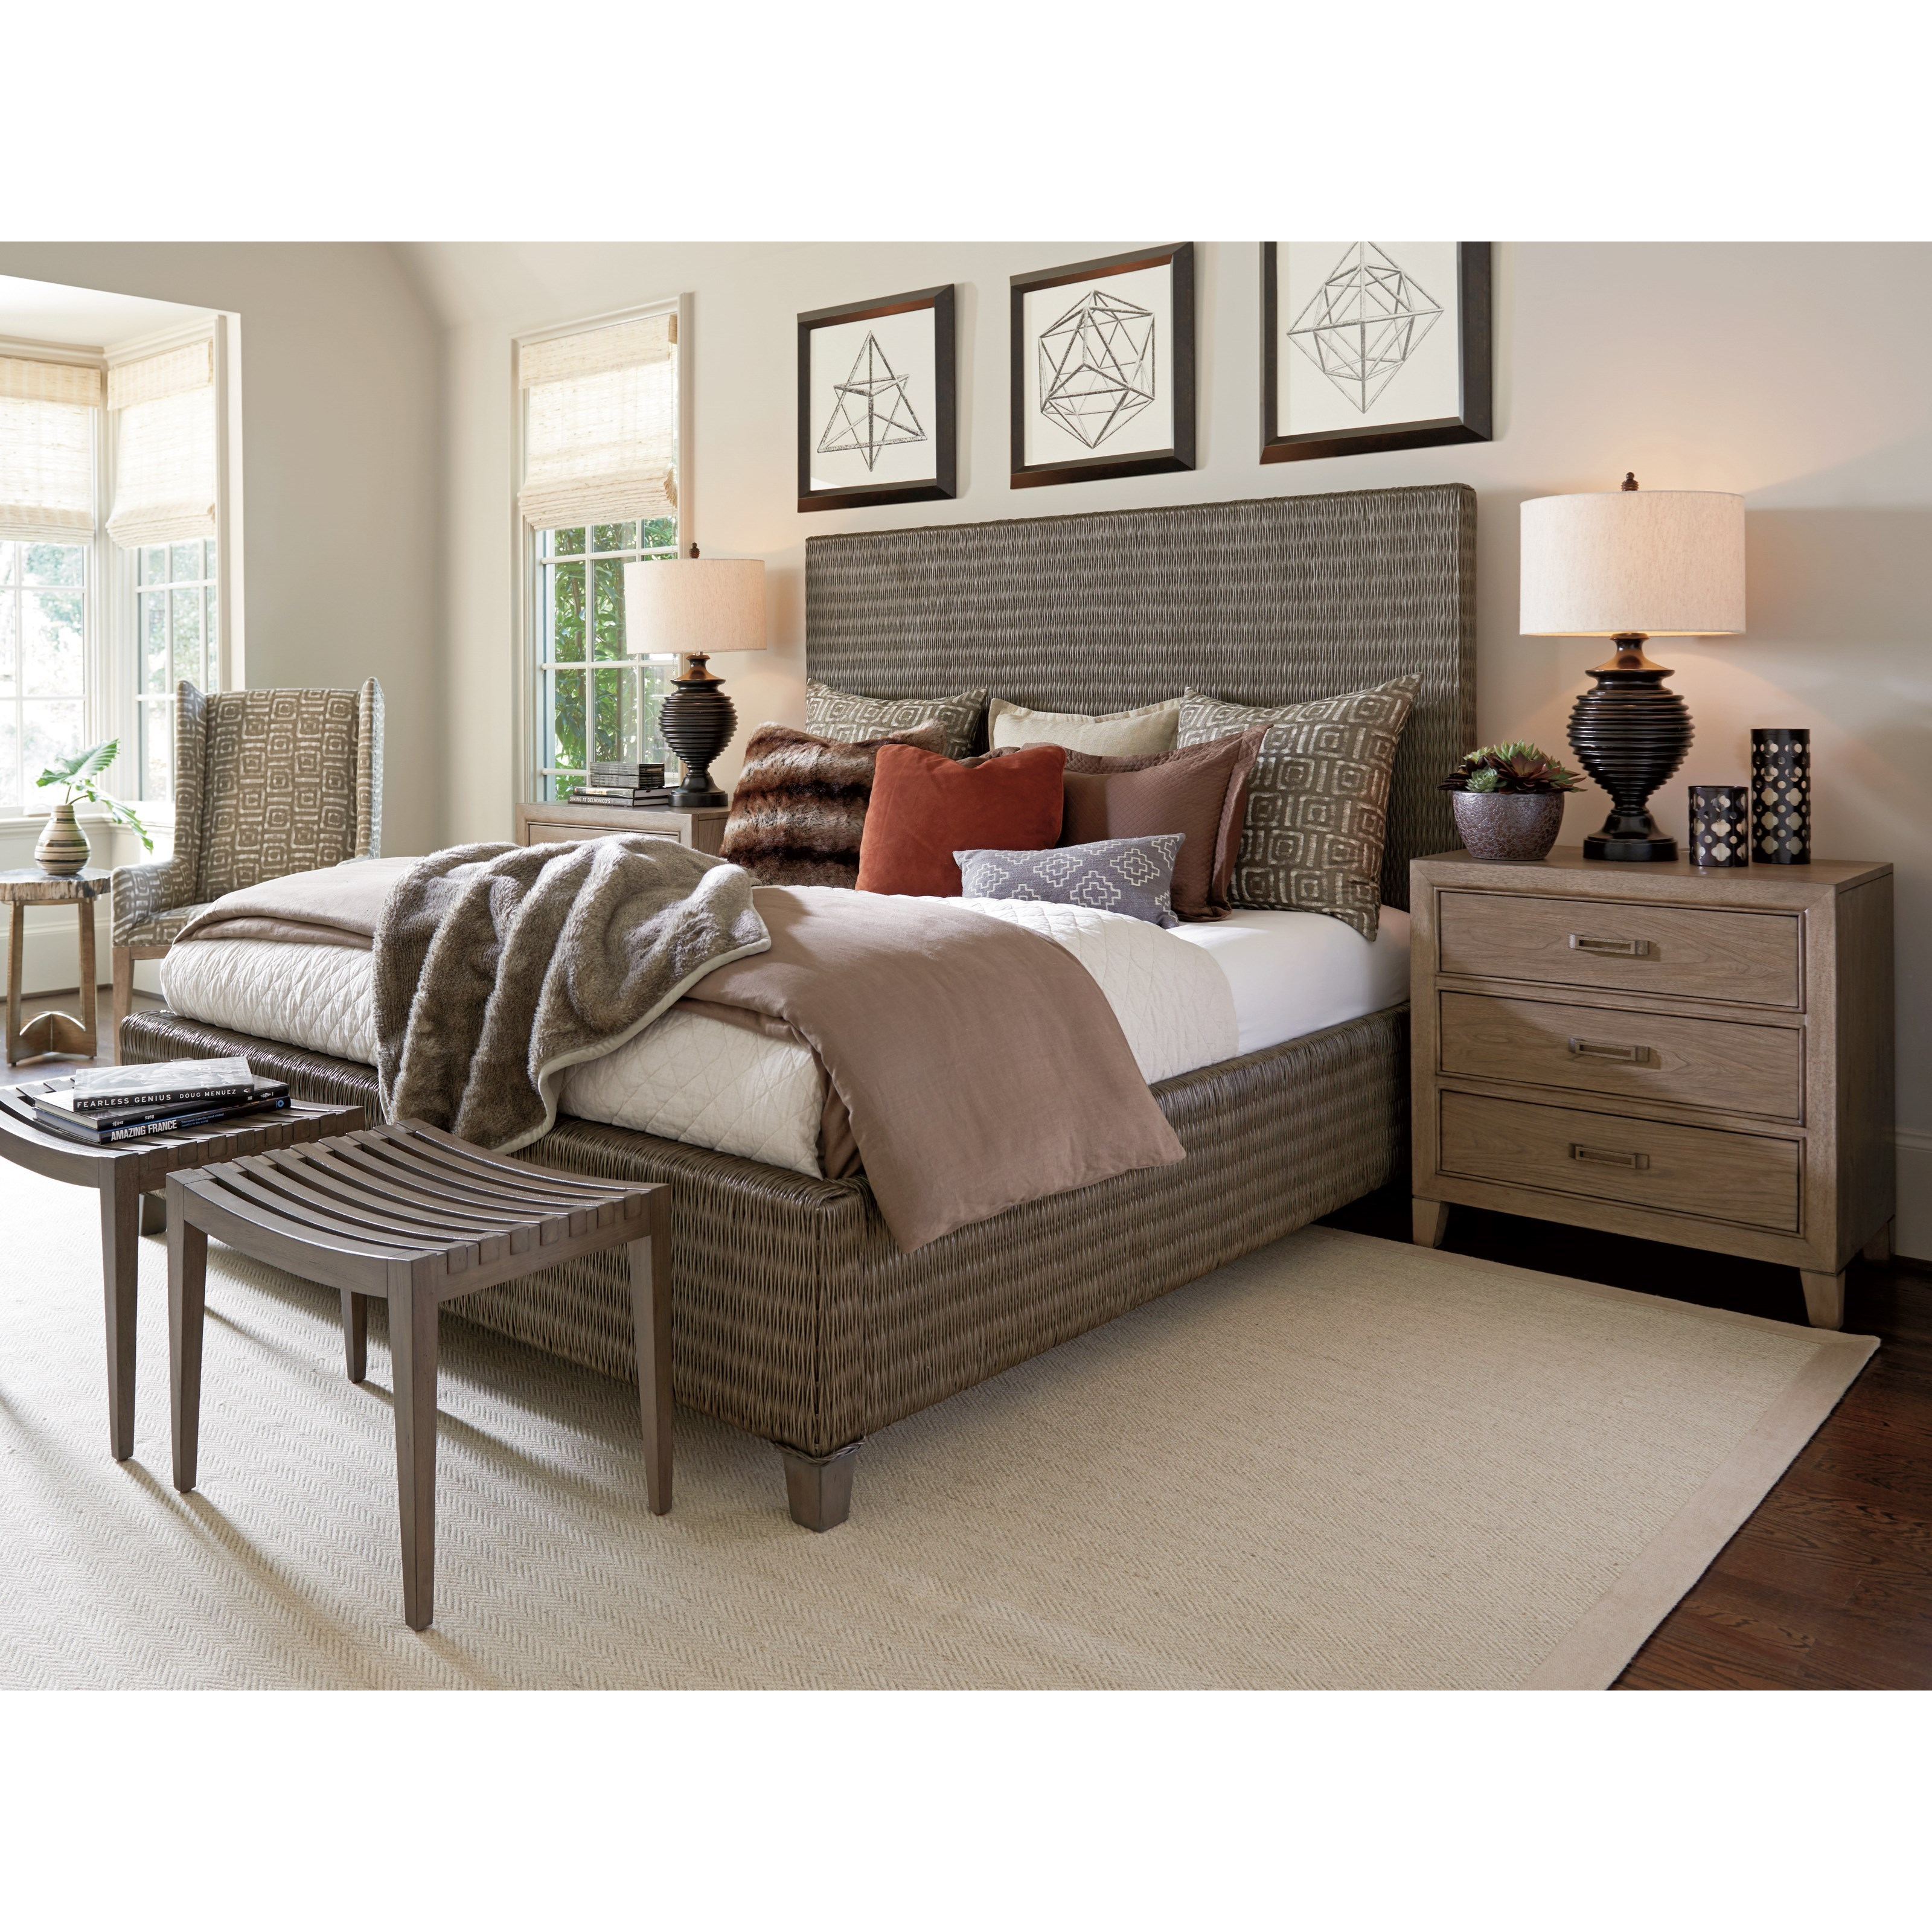 Cypress Point Q Bedroom Group by Tommy Bahama Home at Baer's Furniture